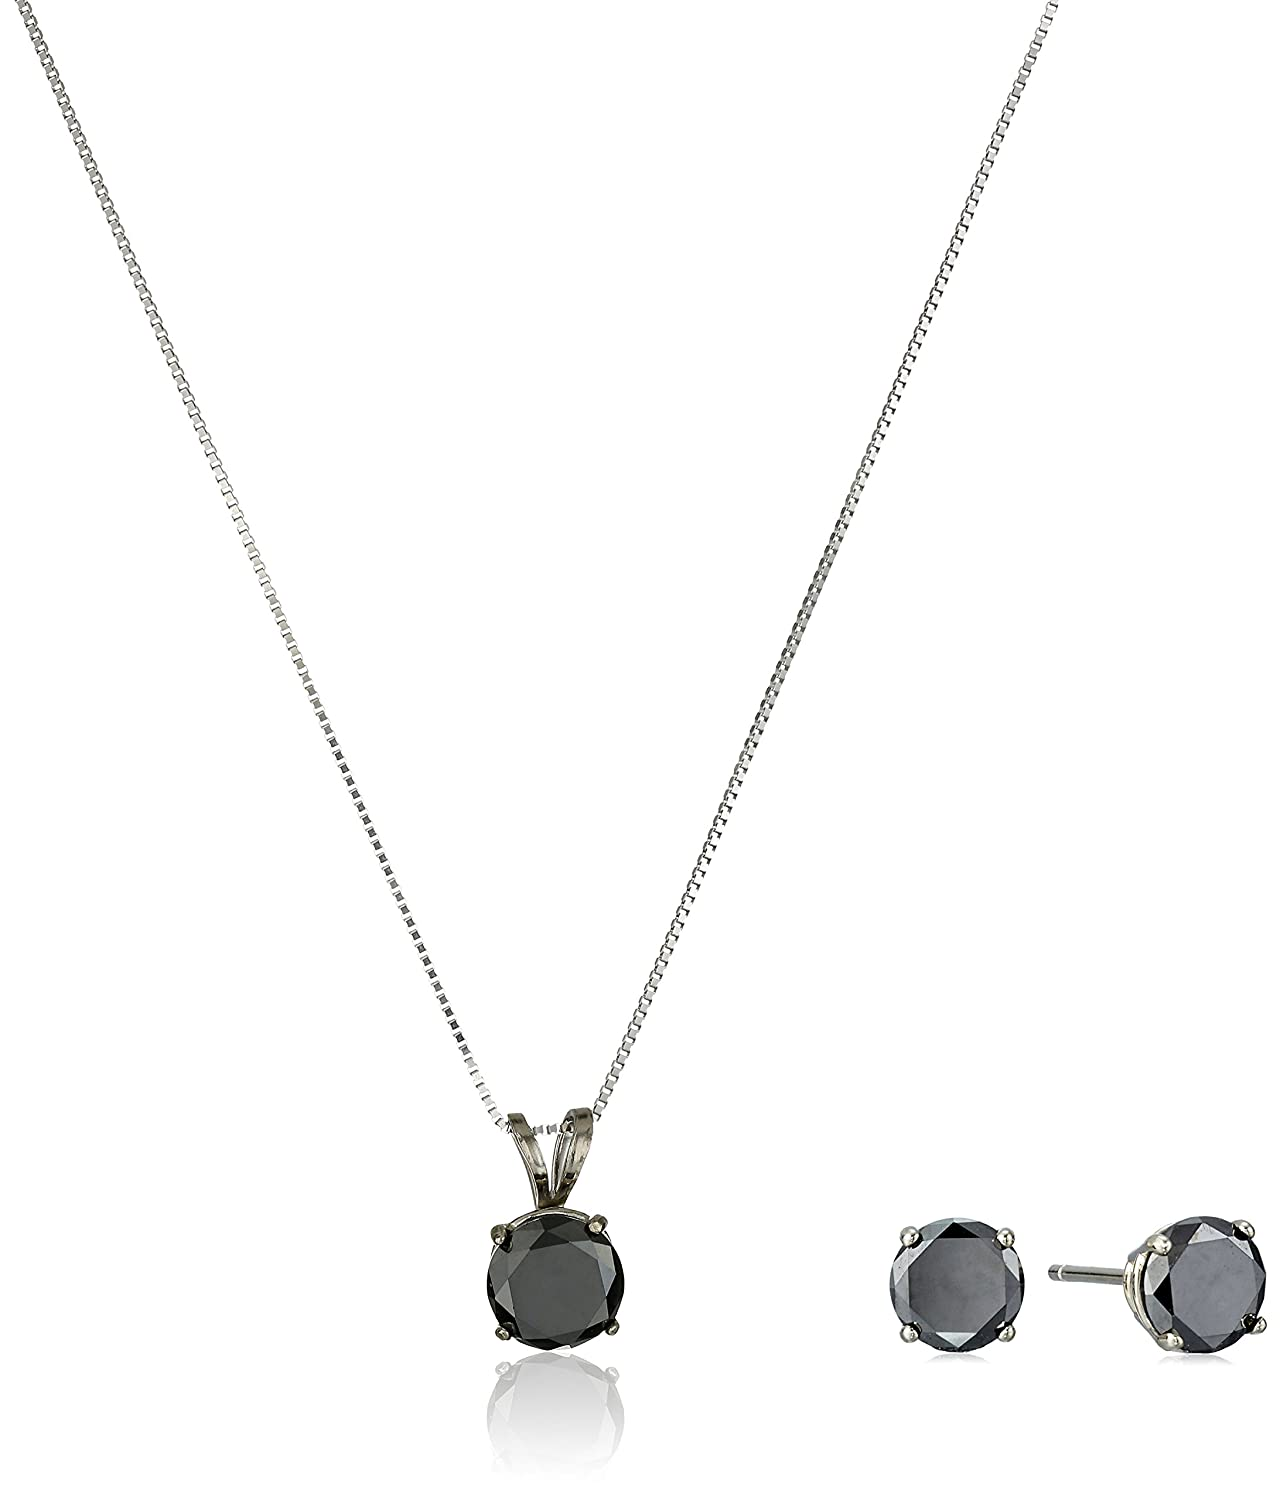 bead black turgeon necklace product raine diamond pendant